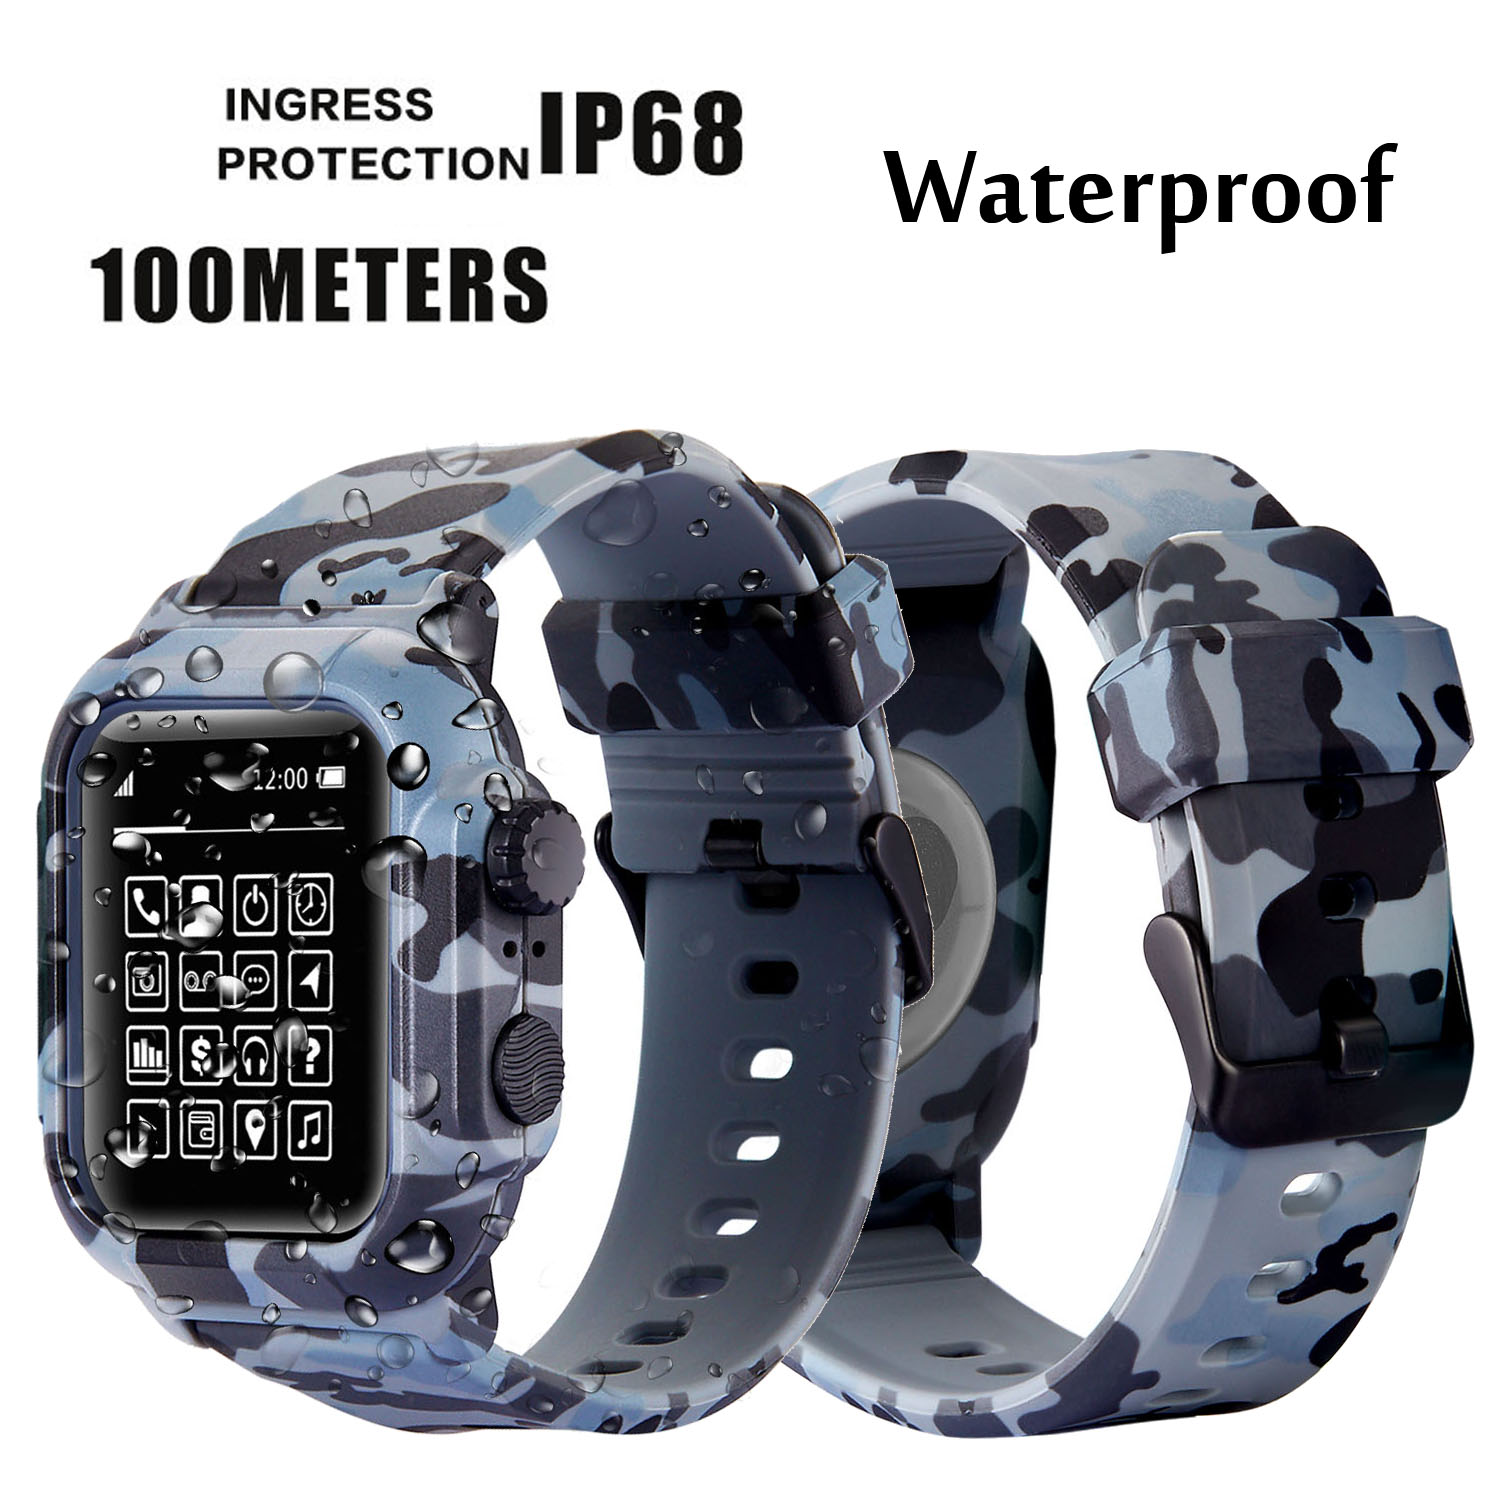 Dive Waterproof Sports Band Case Cover For Apple Watch Case Series 4 3 2 Silicone Band 44mm 42mm 40mm Strap Shockproof Frame